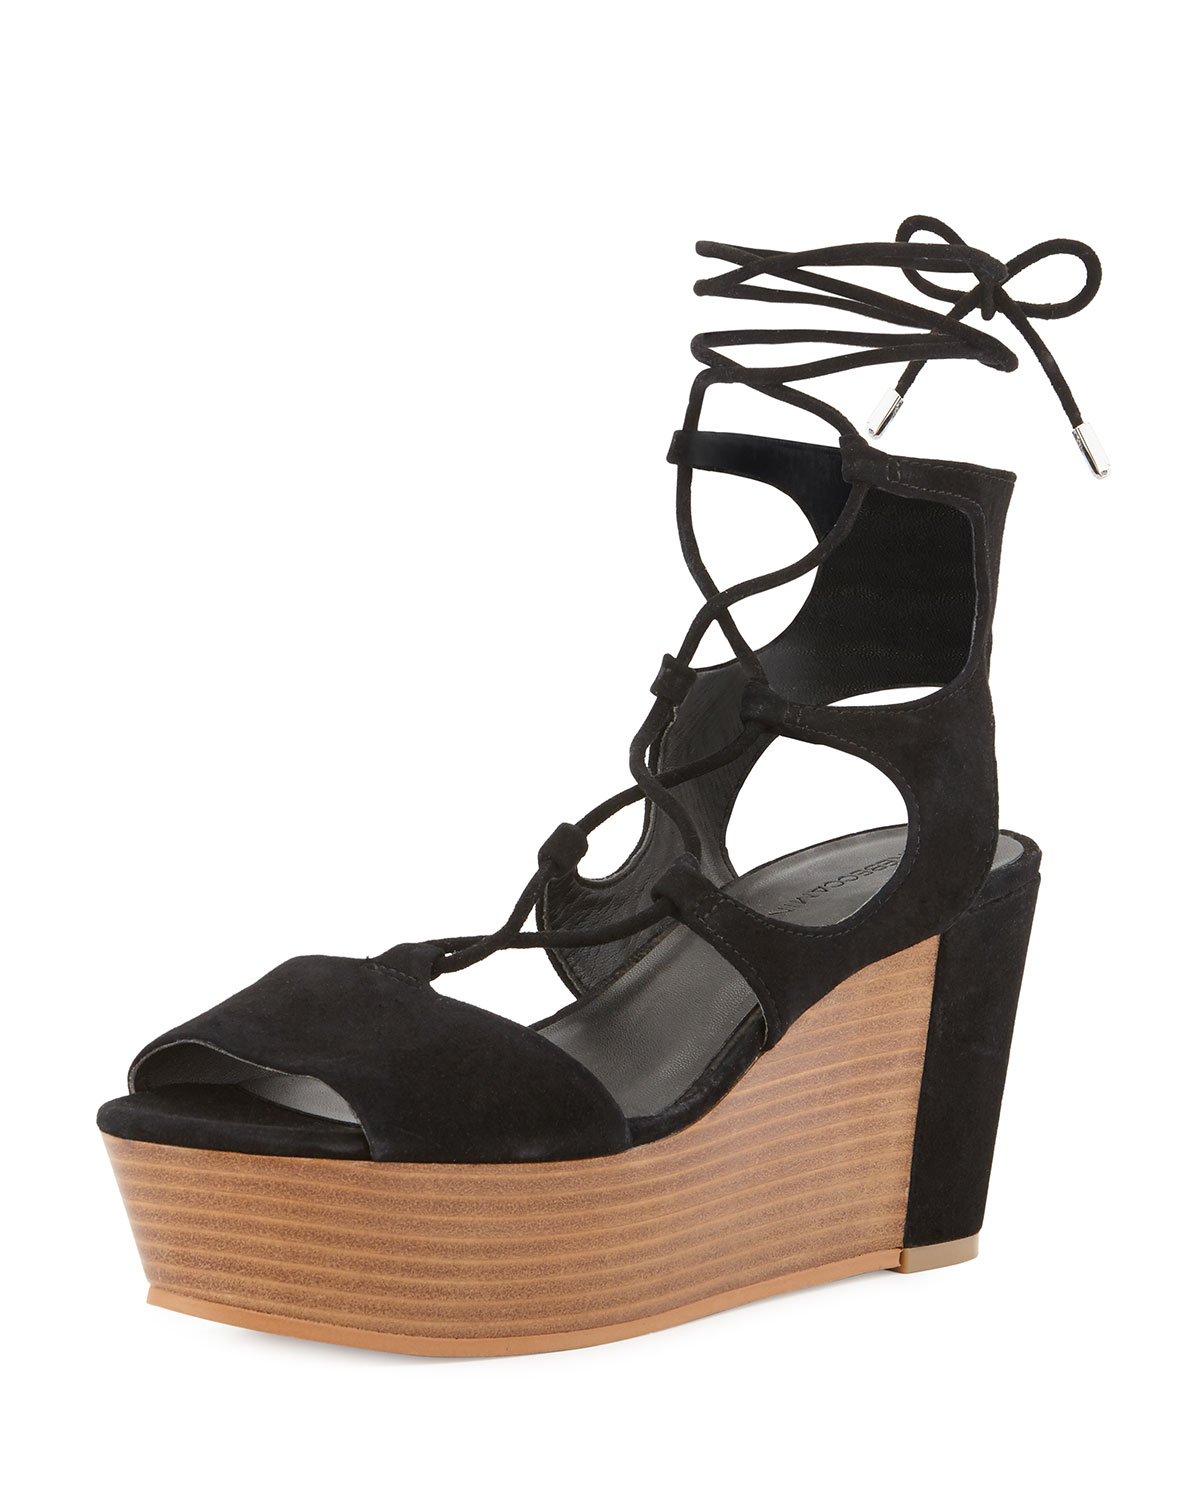 0d703ed892fb Rebecca Minkoff Cady Lace-Up Platform Wedge Sandals